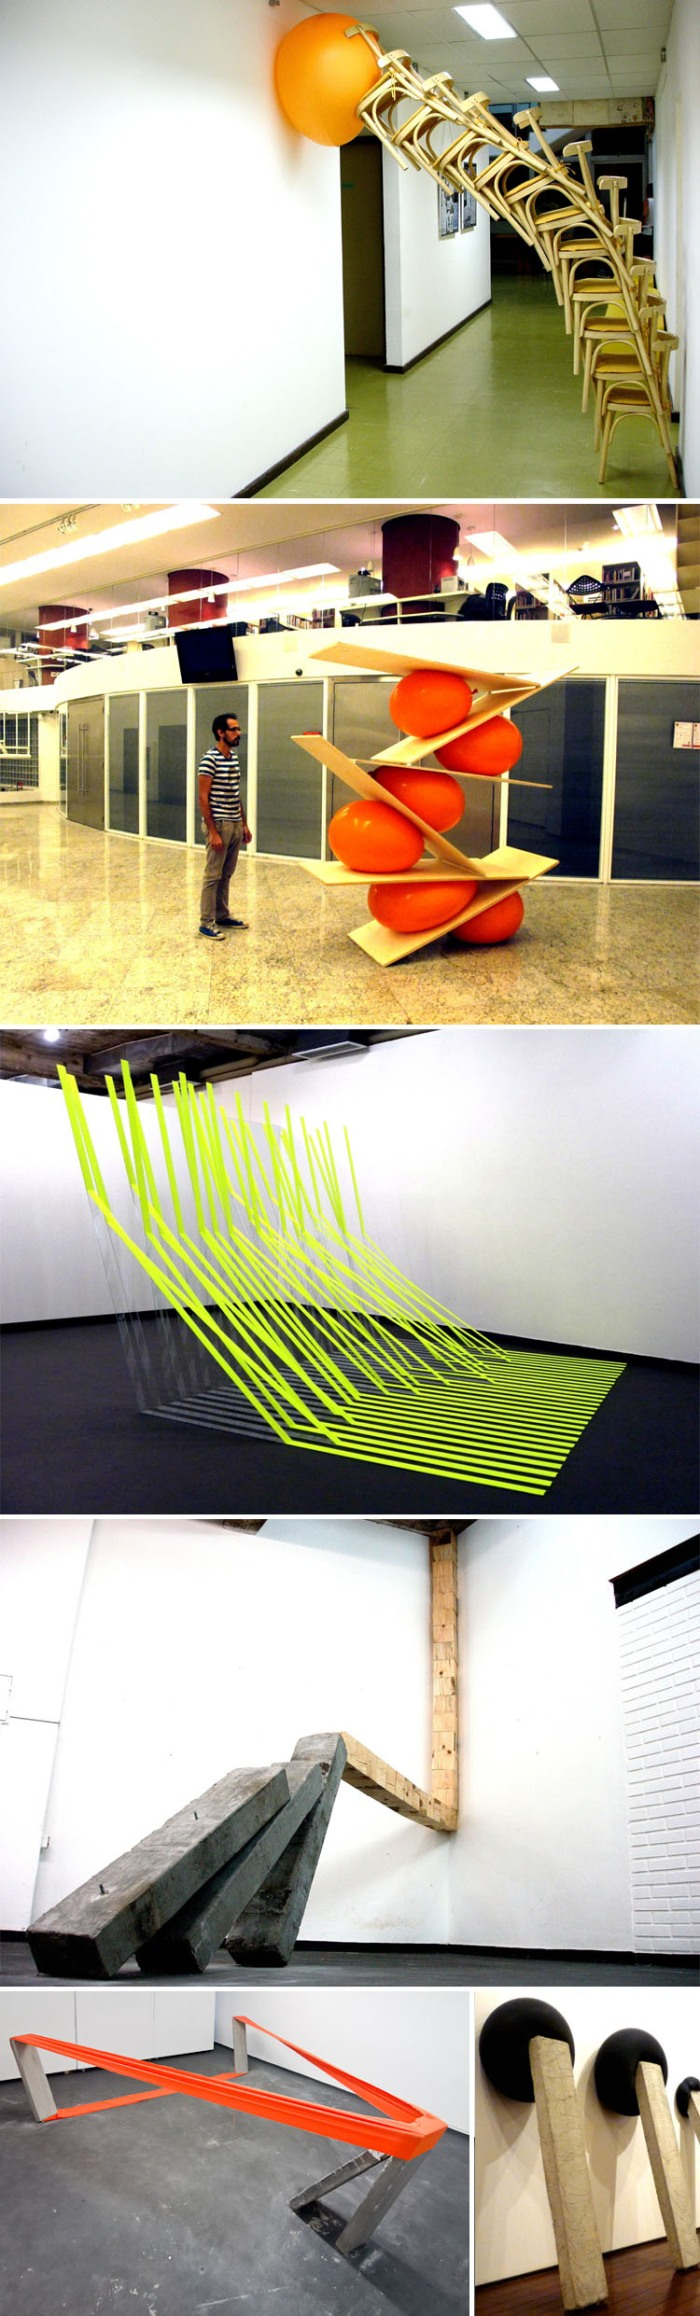 Brazilian contemporary sculpture, installation, balancing, balloons, concrete